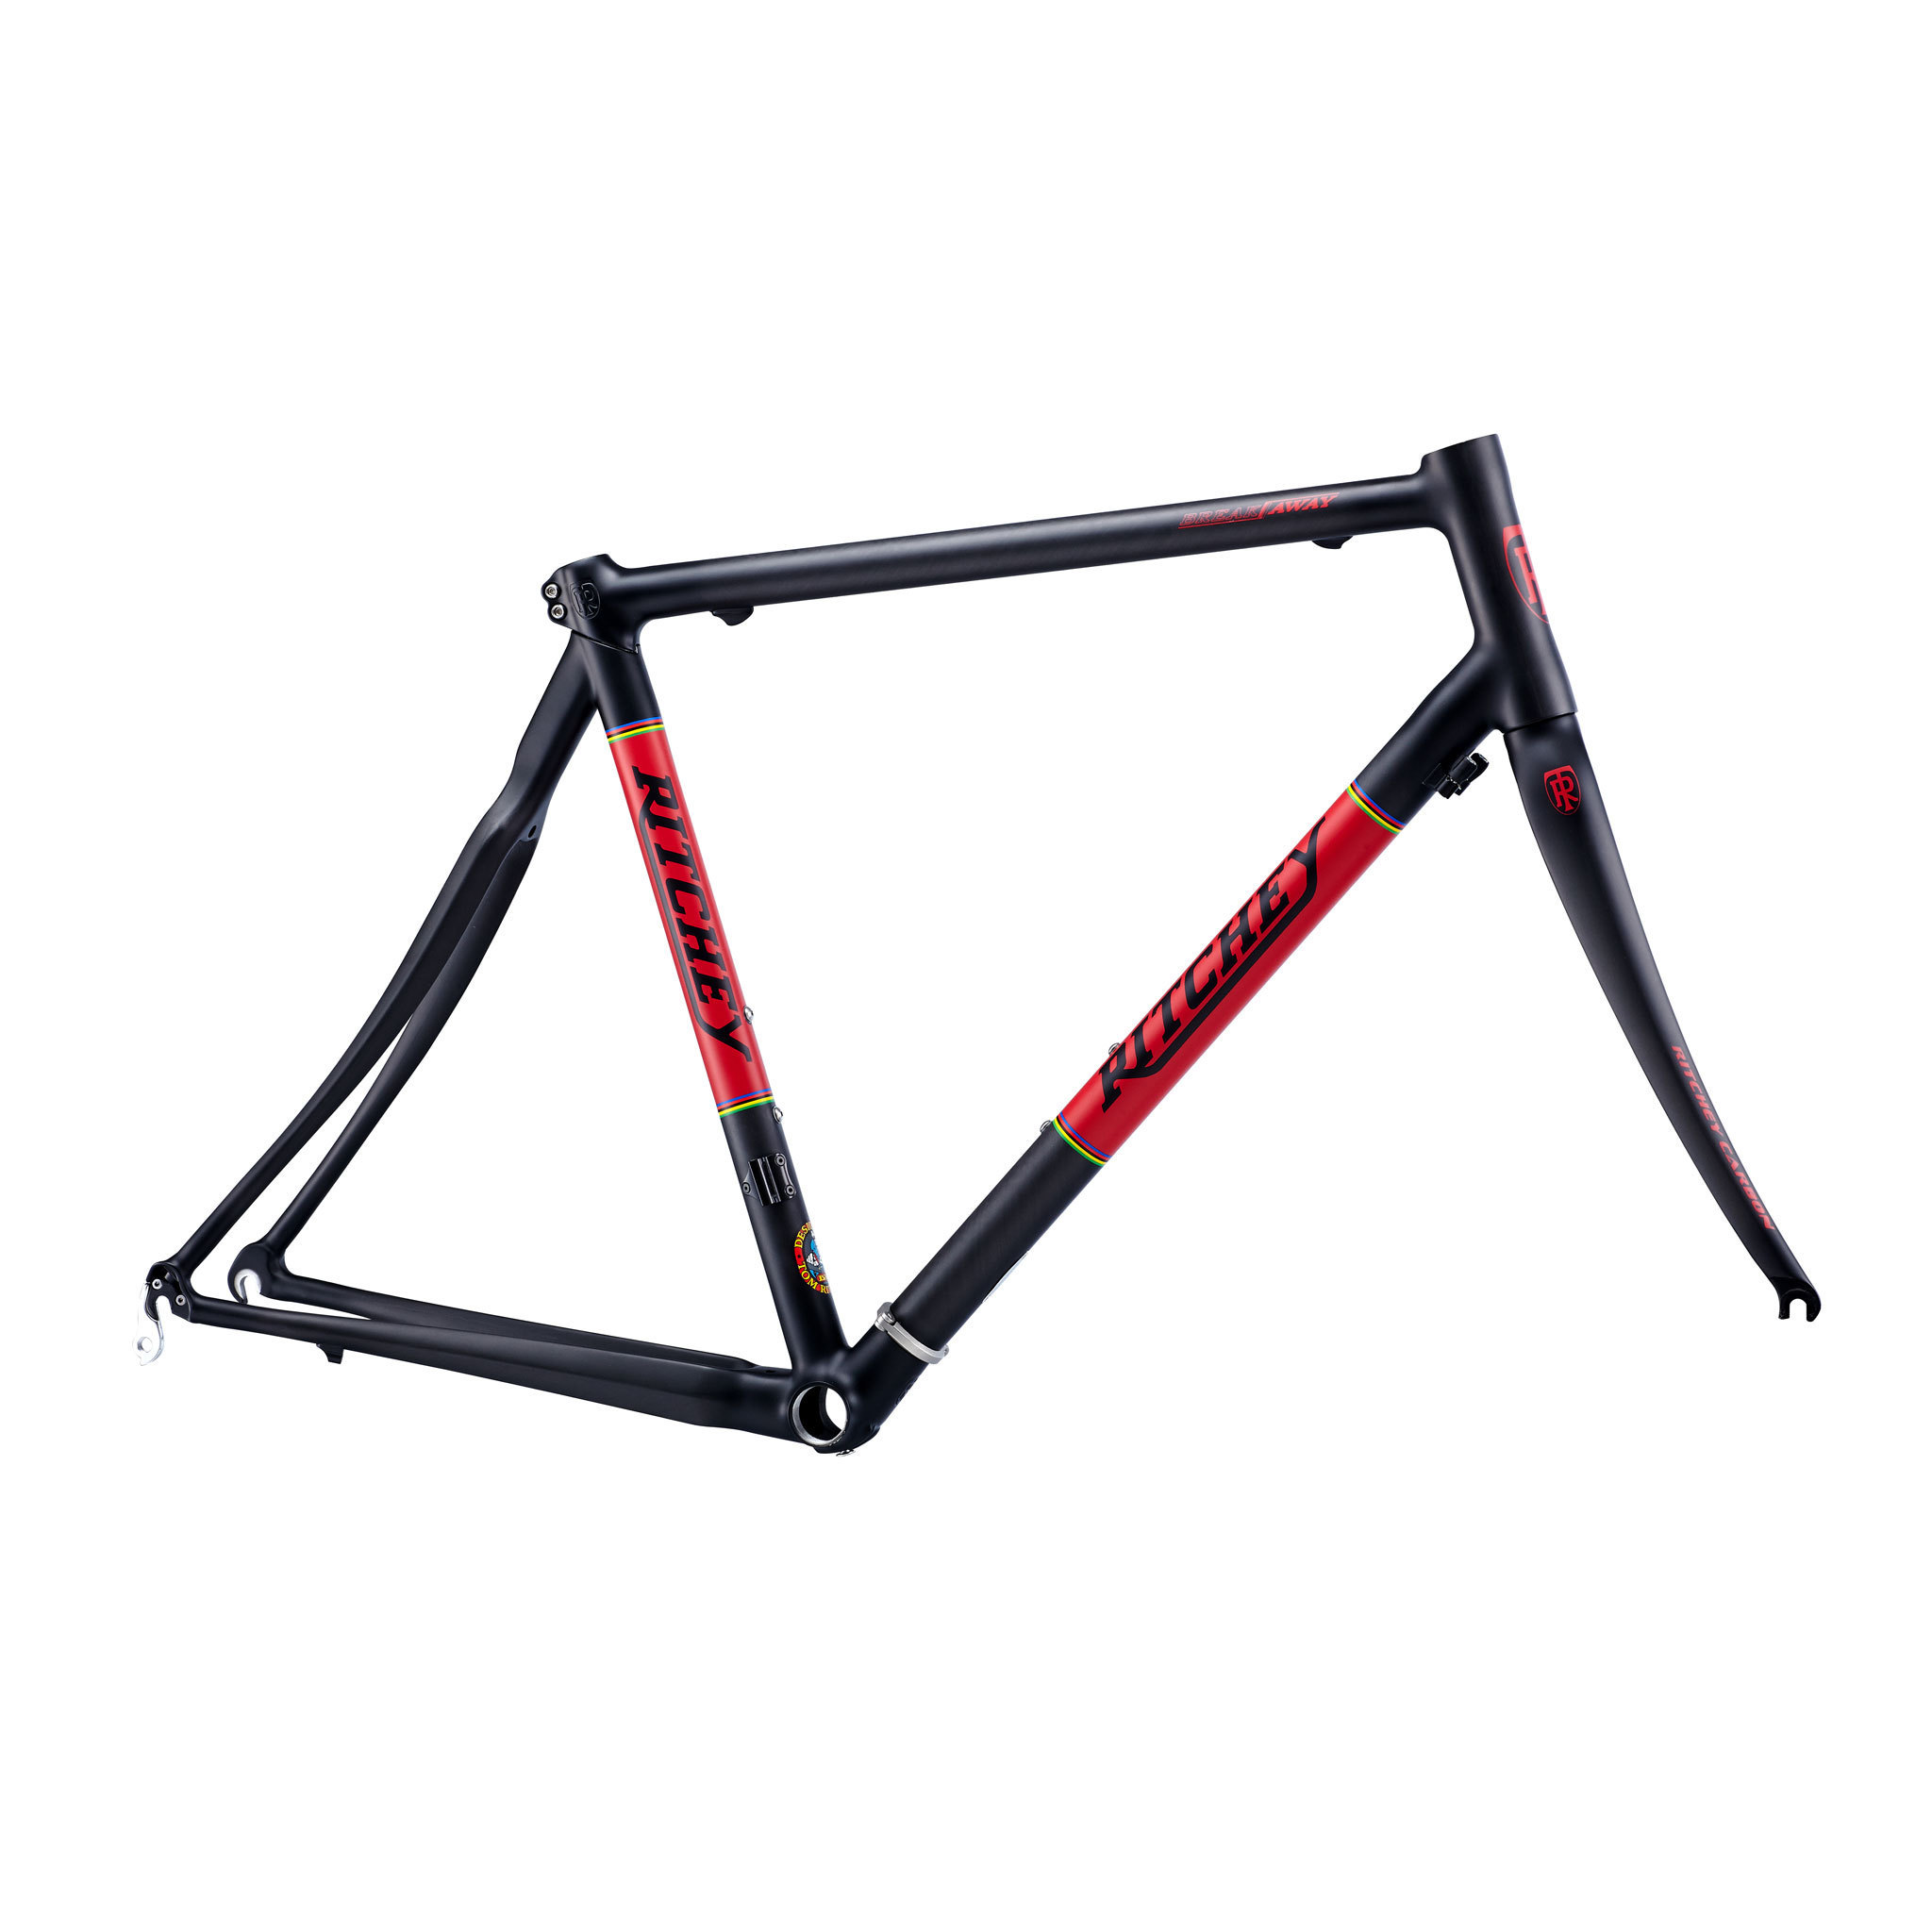 Ritchey Wcs Road Break Away Carbon Frameset Black Red